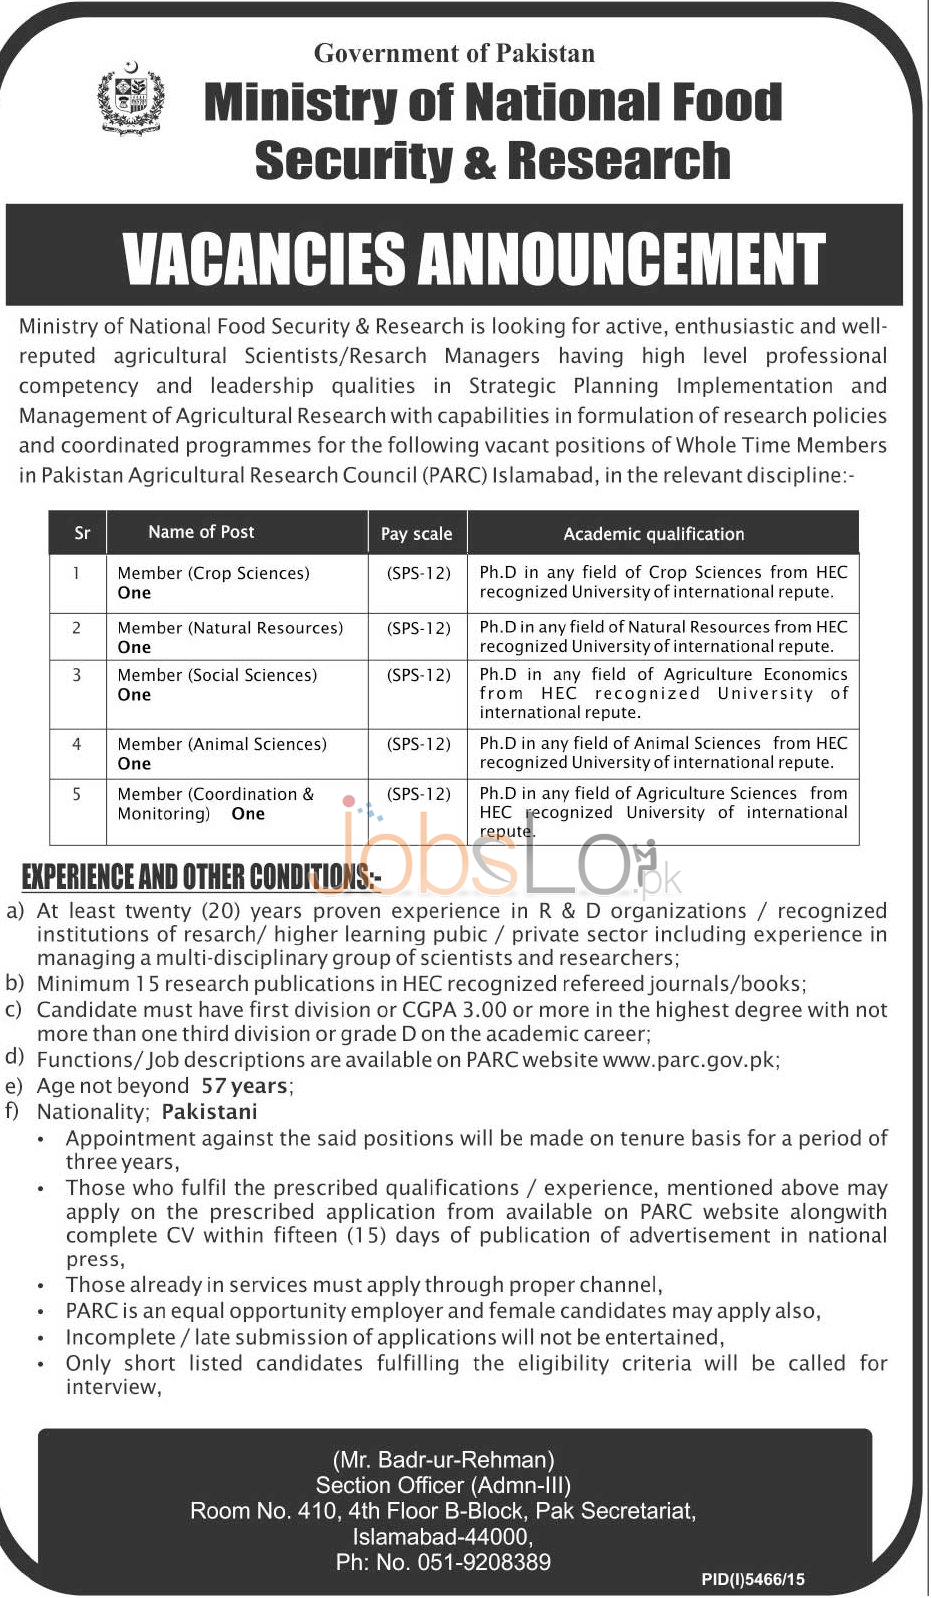 Ministry of Natinoal Food Security & Research Jobs